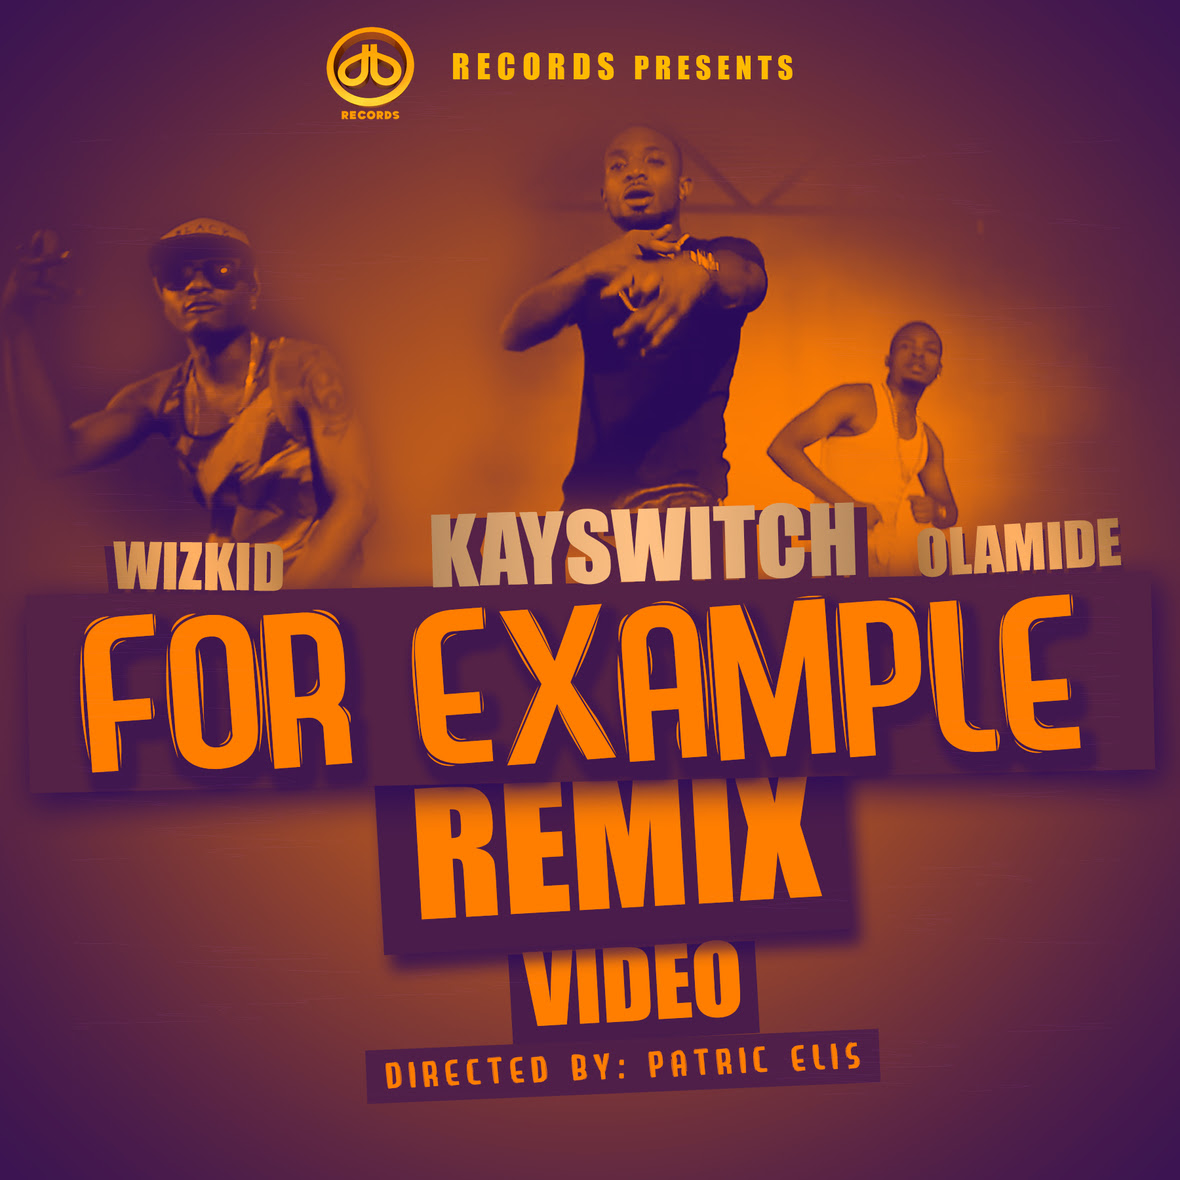 Fresh Video: For Example (Remix) by Kay Switch featuring Olamide & Wizkid